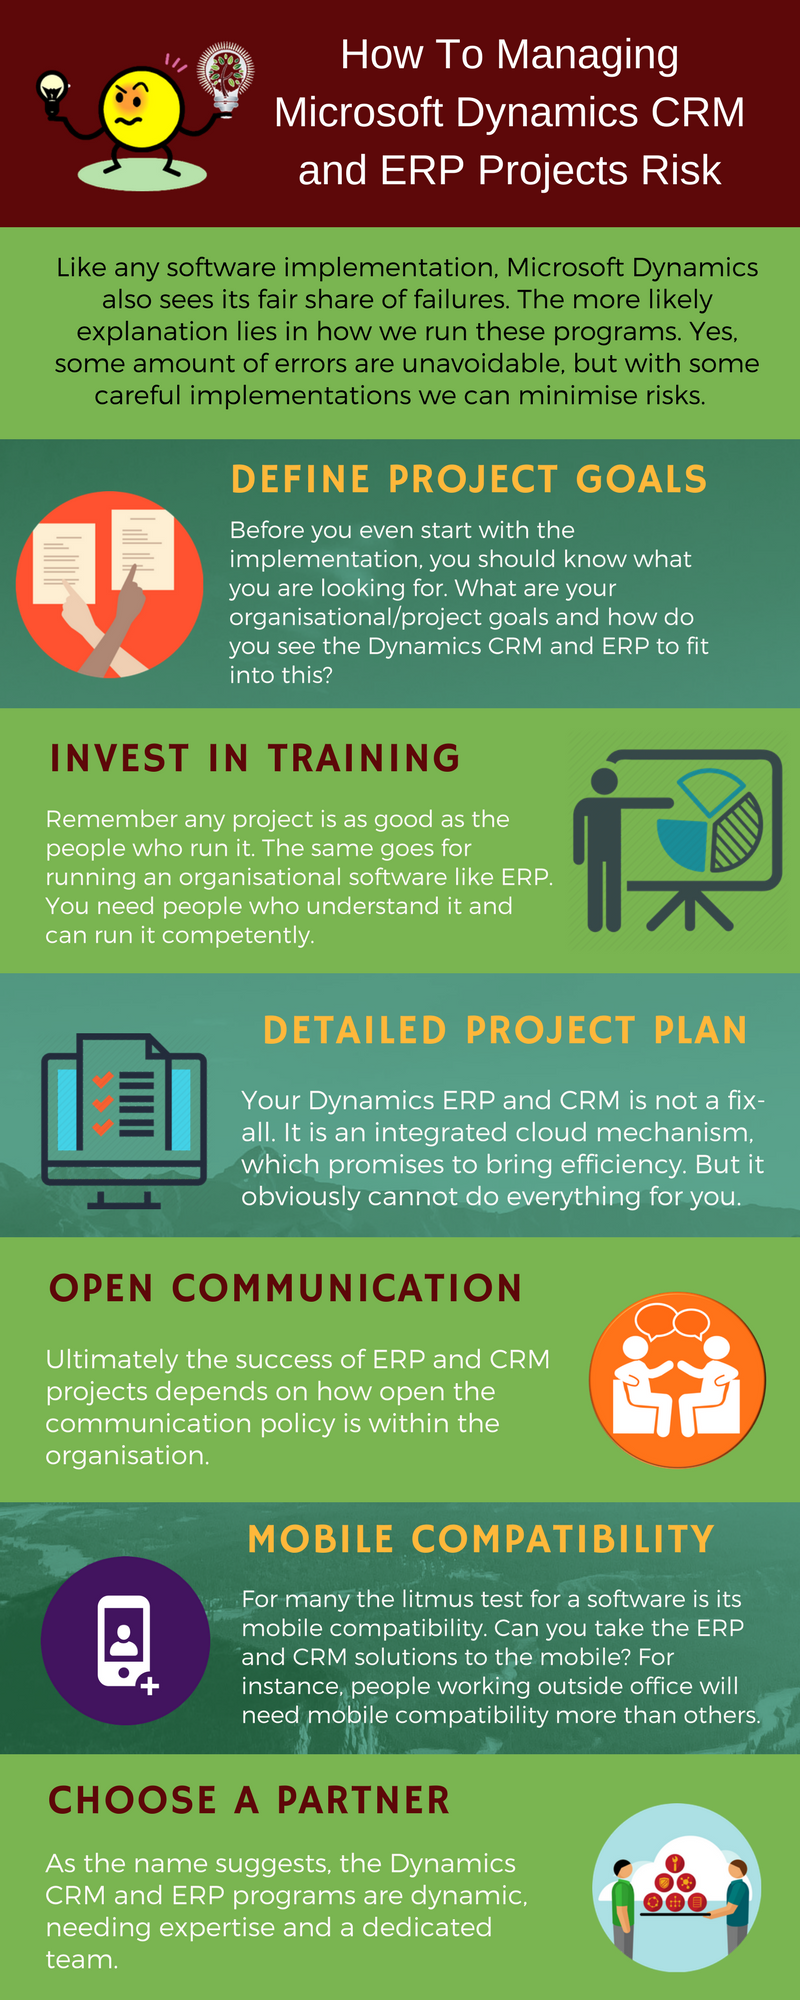 How-To-Managing-Microsoft-Dynamics-CRM-and-ERP-Projects-Risk.png